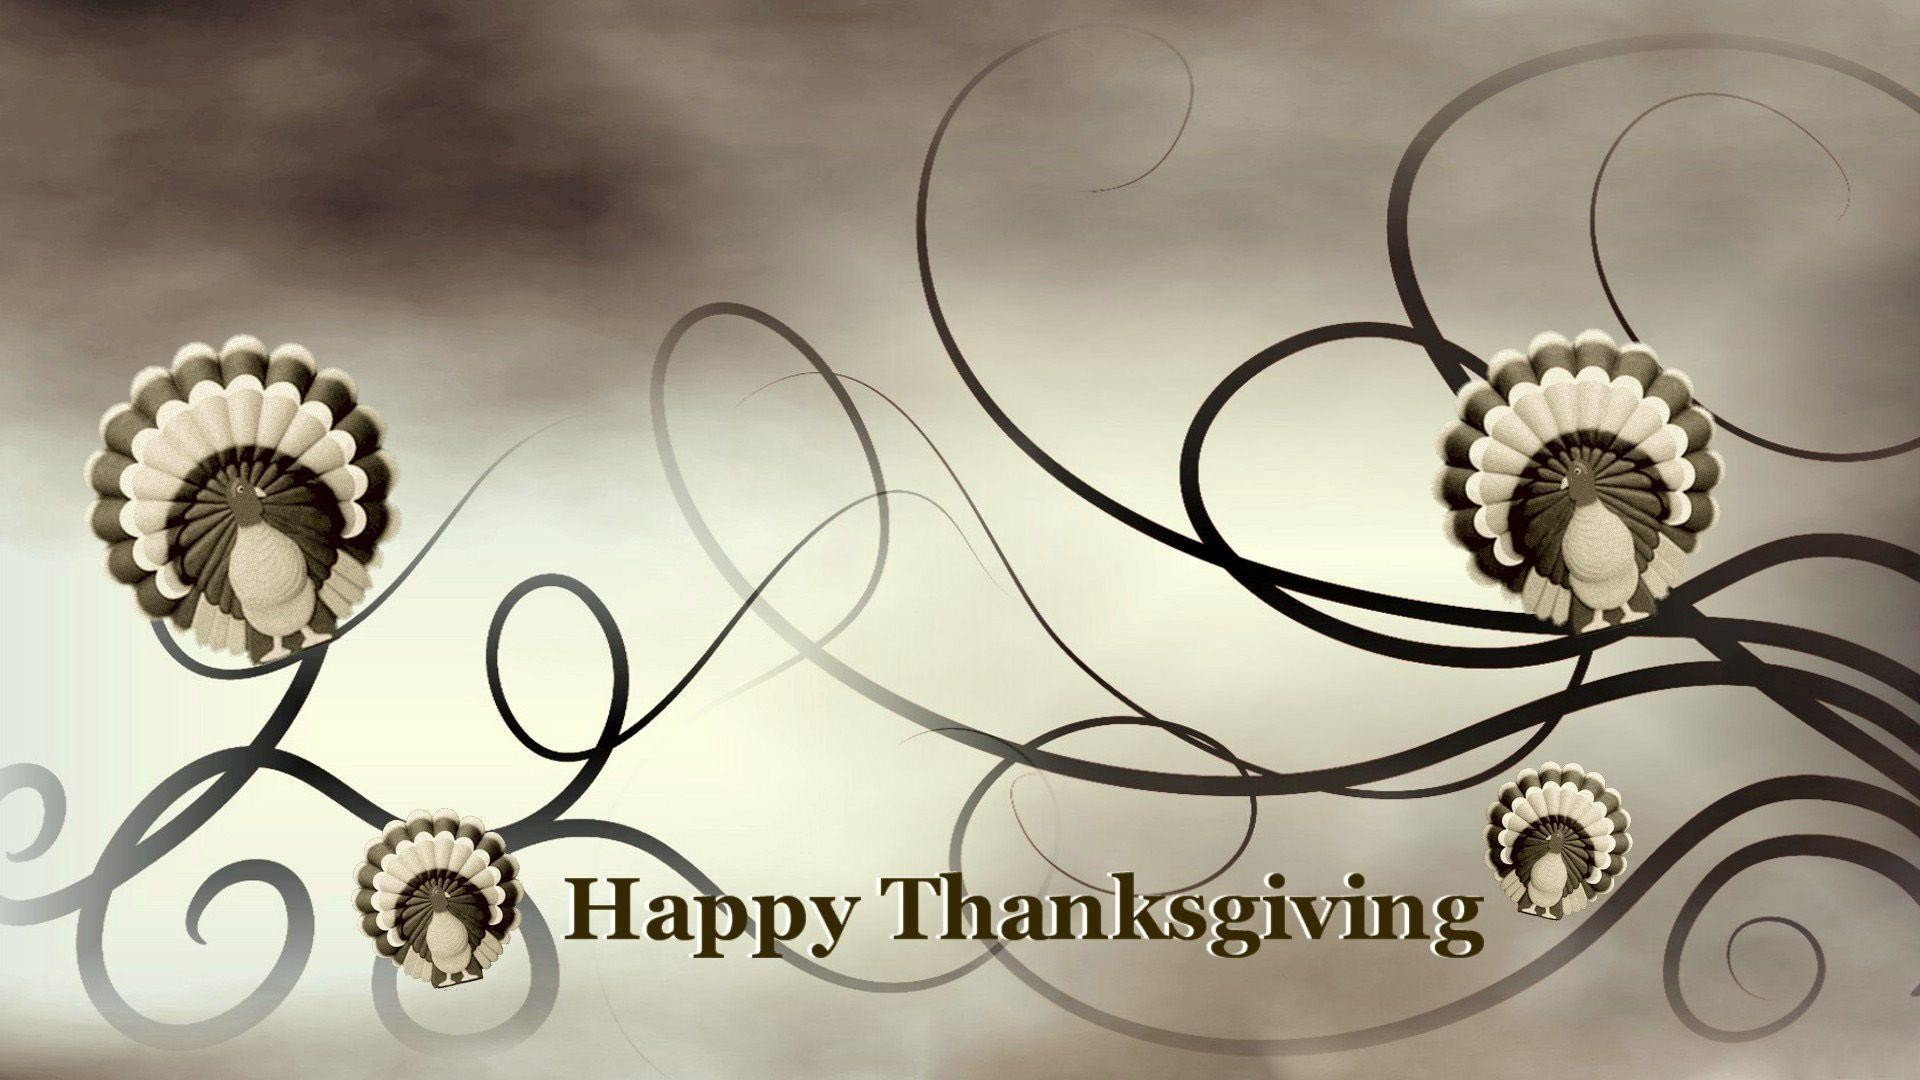 1920x1080 Thanksgiving Wallpaper Backgrounds Hd, wallpaper, Thanksgiving .